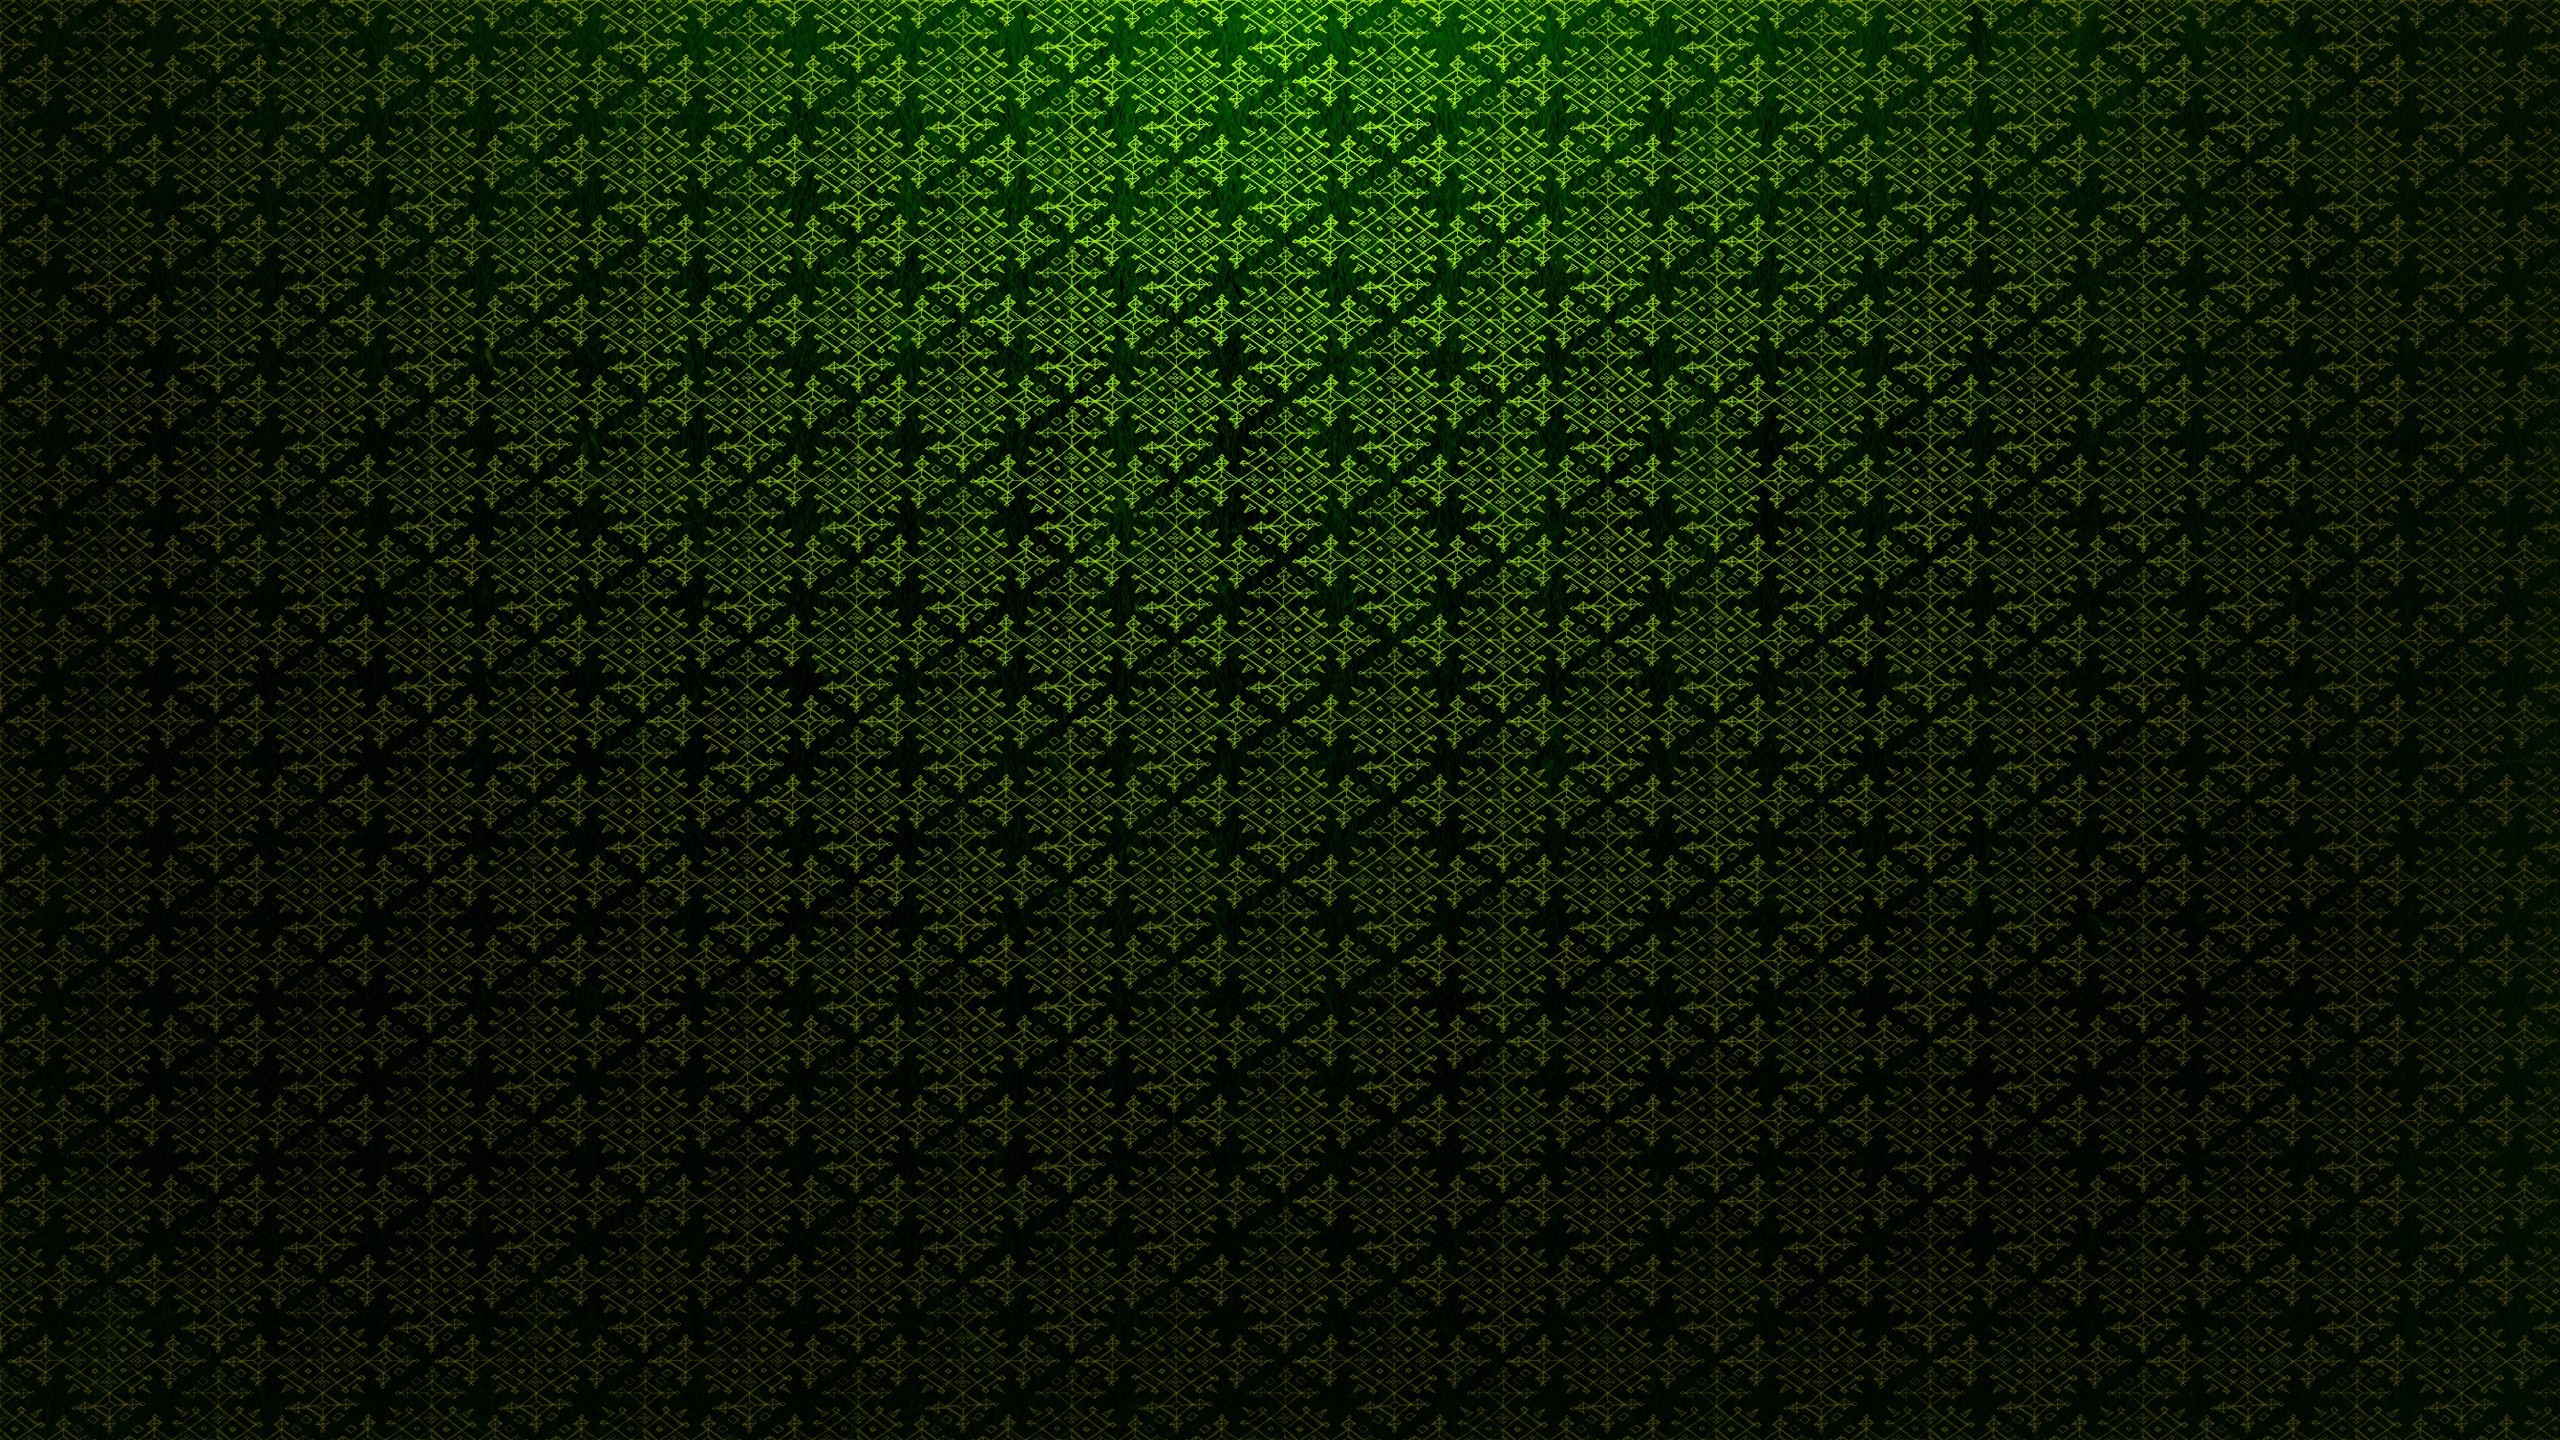 How To Make Wallpaper Fit On Iphone 6 Background Gradient 183 ① Download Free High Resolution